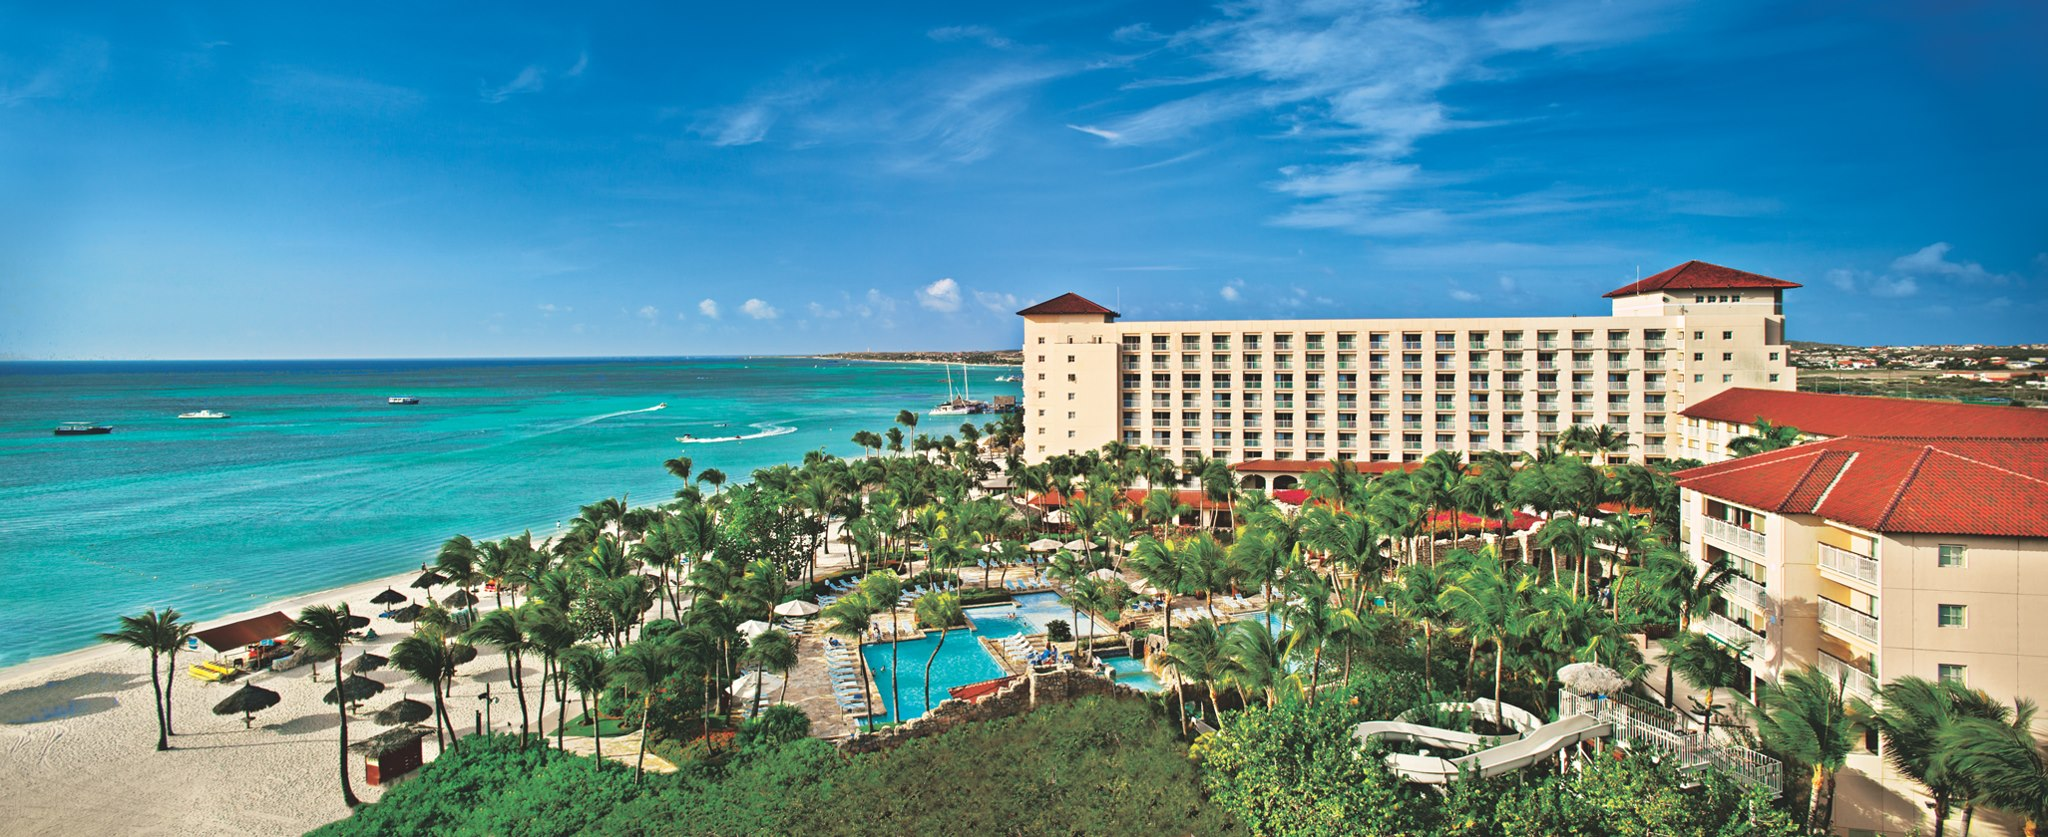 palm beach aruba hotels - palm beach aruba resorts